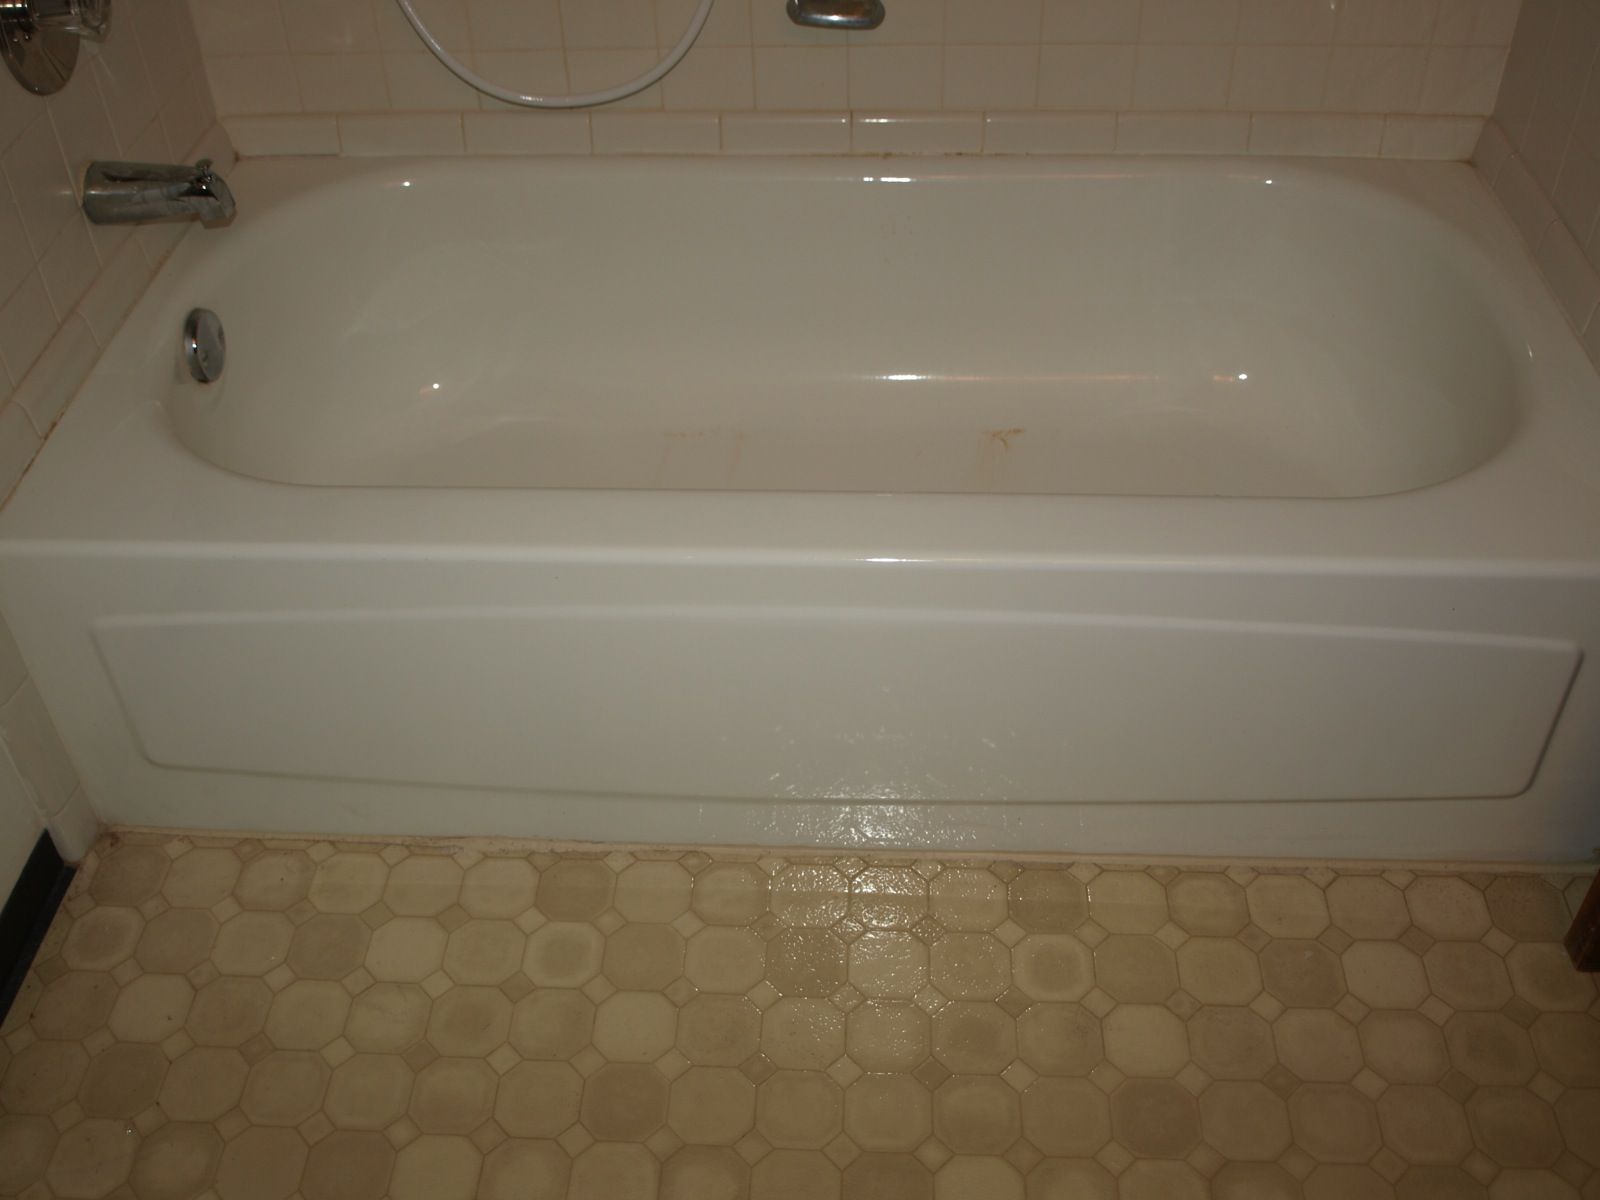 easy access tub cut outs save you time and money